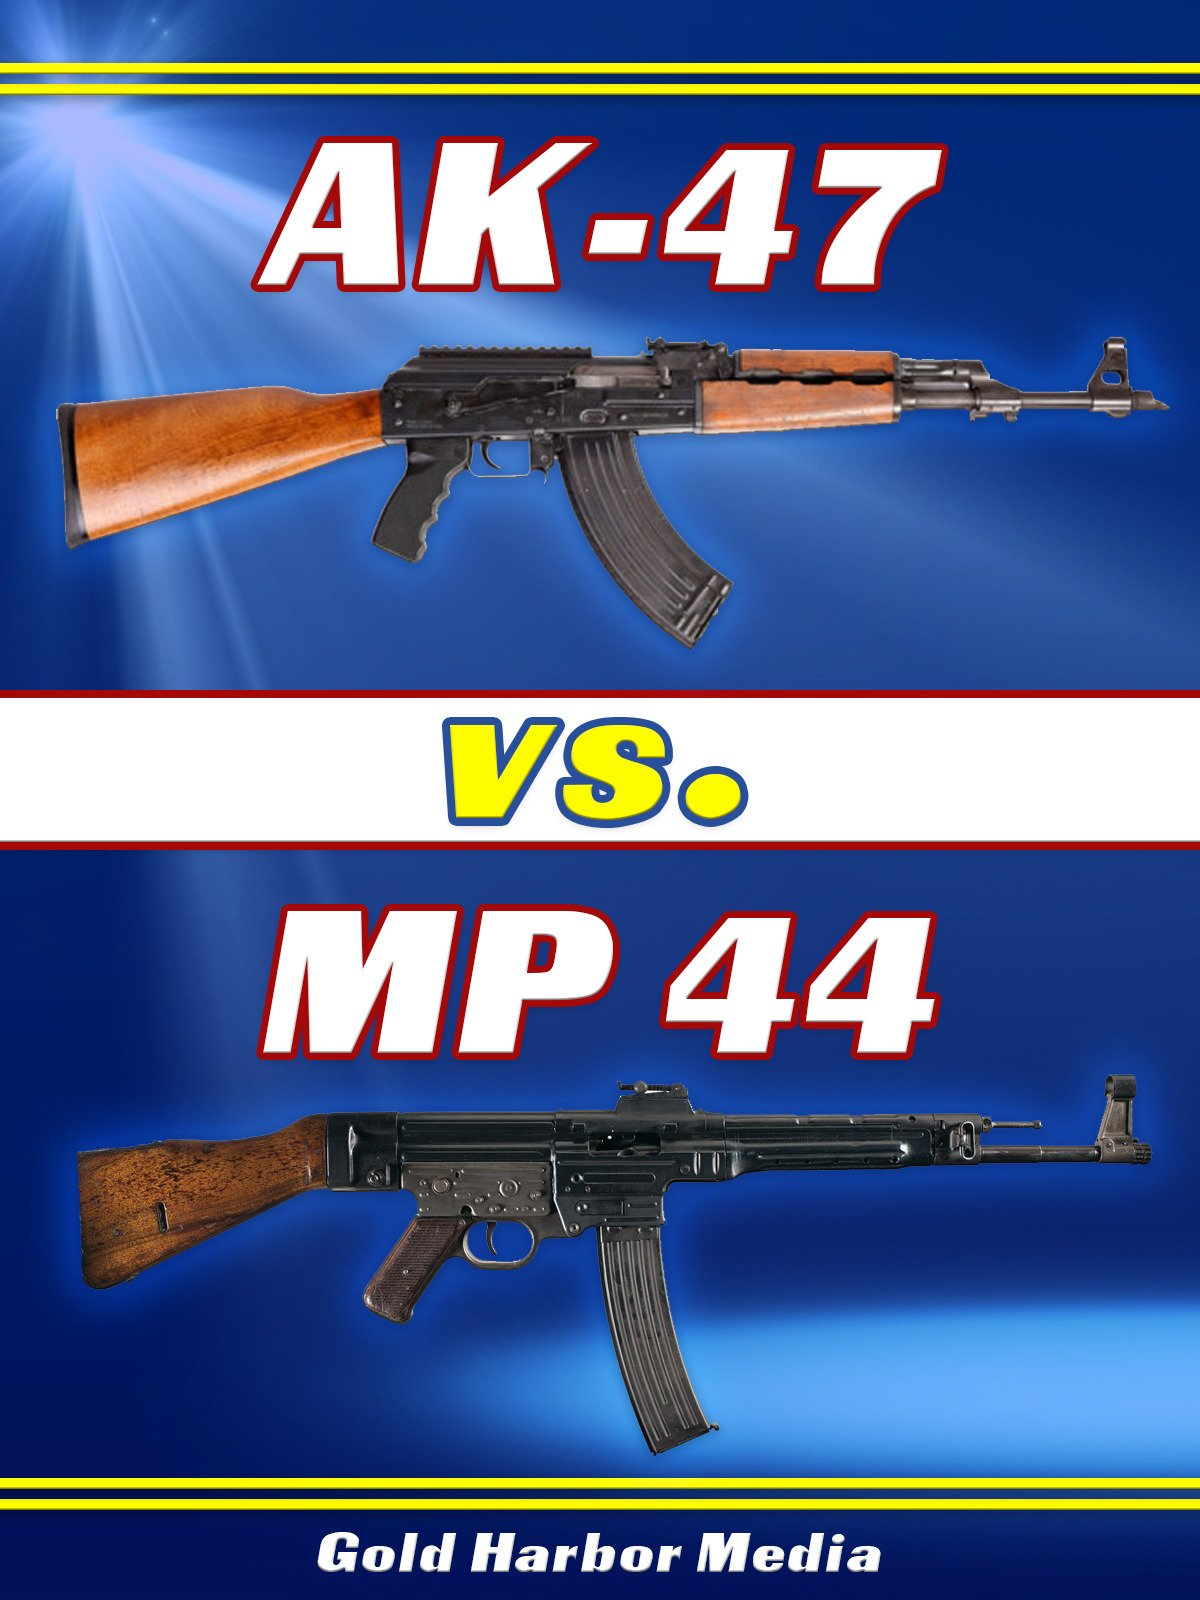 AK-47 vs. MP 44